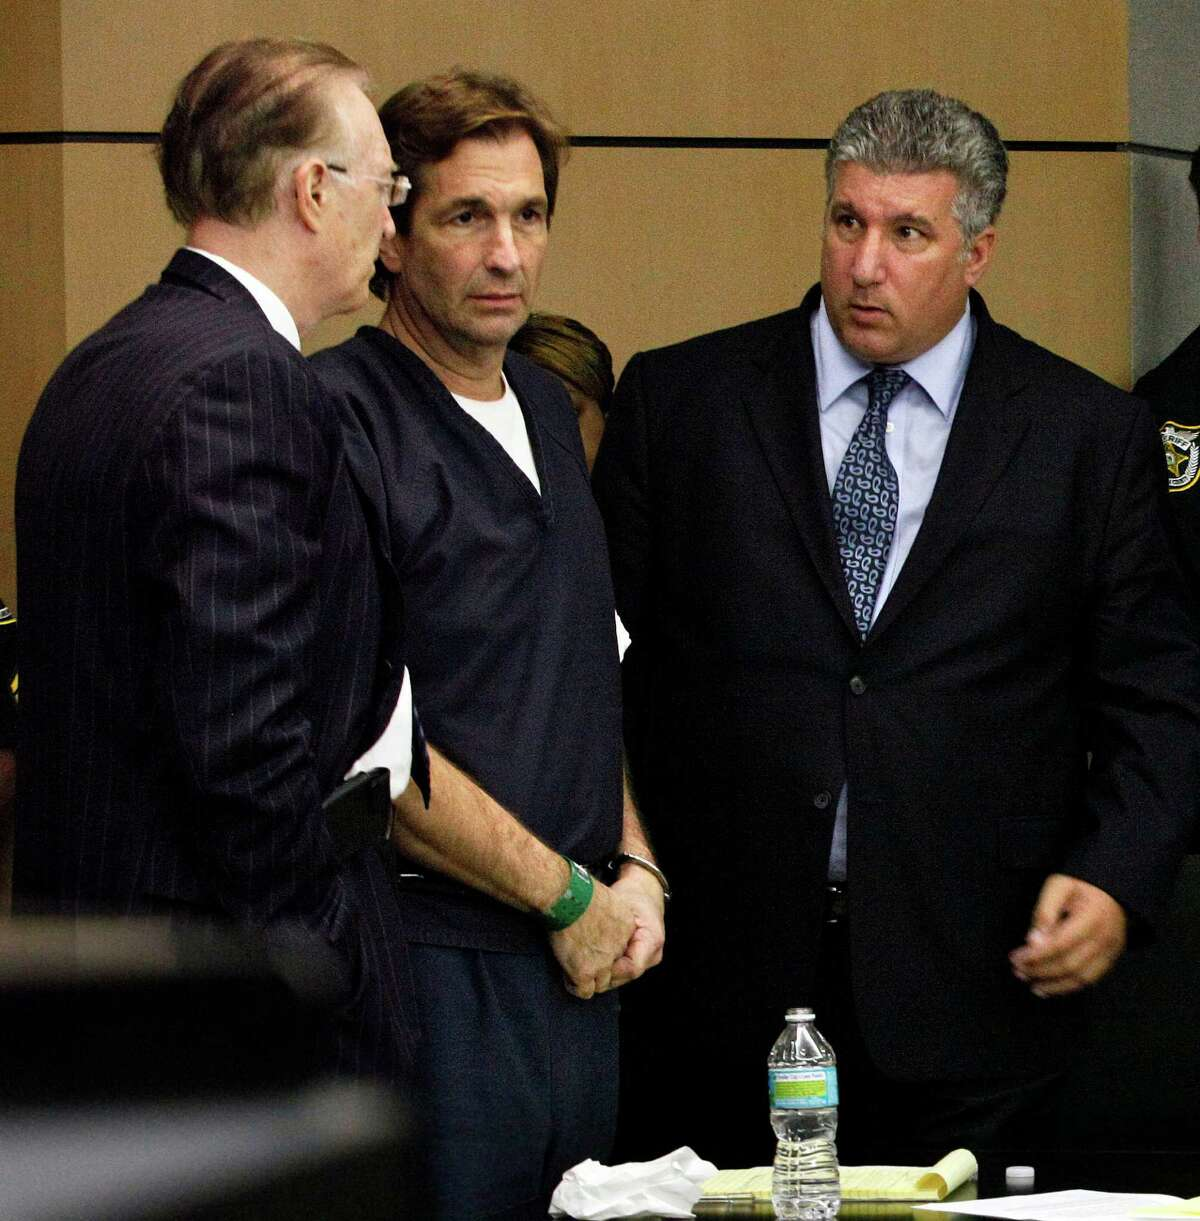 John Goodman, center, talks with his attorneys Roy Black and Guy Fronstin during his sentencing hearing on May 11 in West Palm Beach, Fla. (AP Photo/The Palm Beach Post, Lannis Waters, Pool)